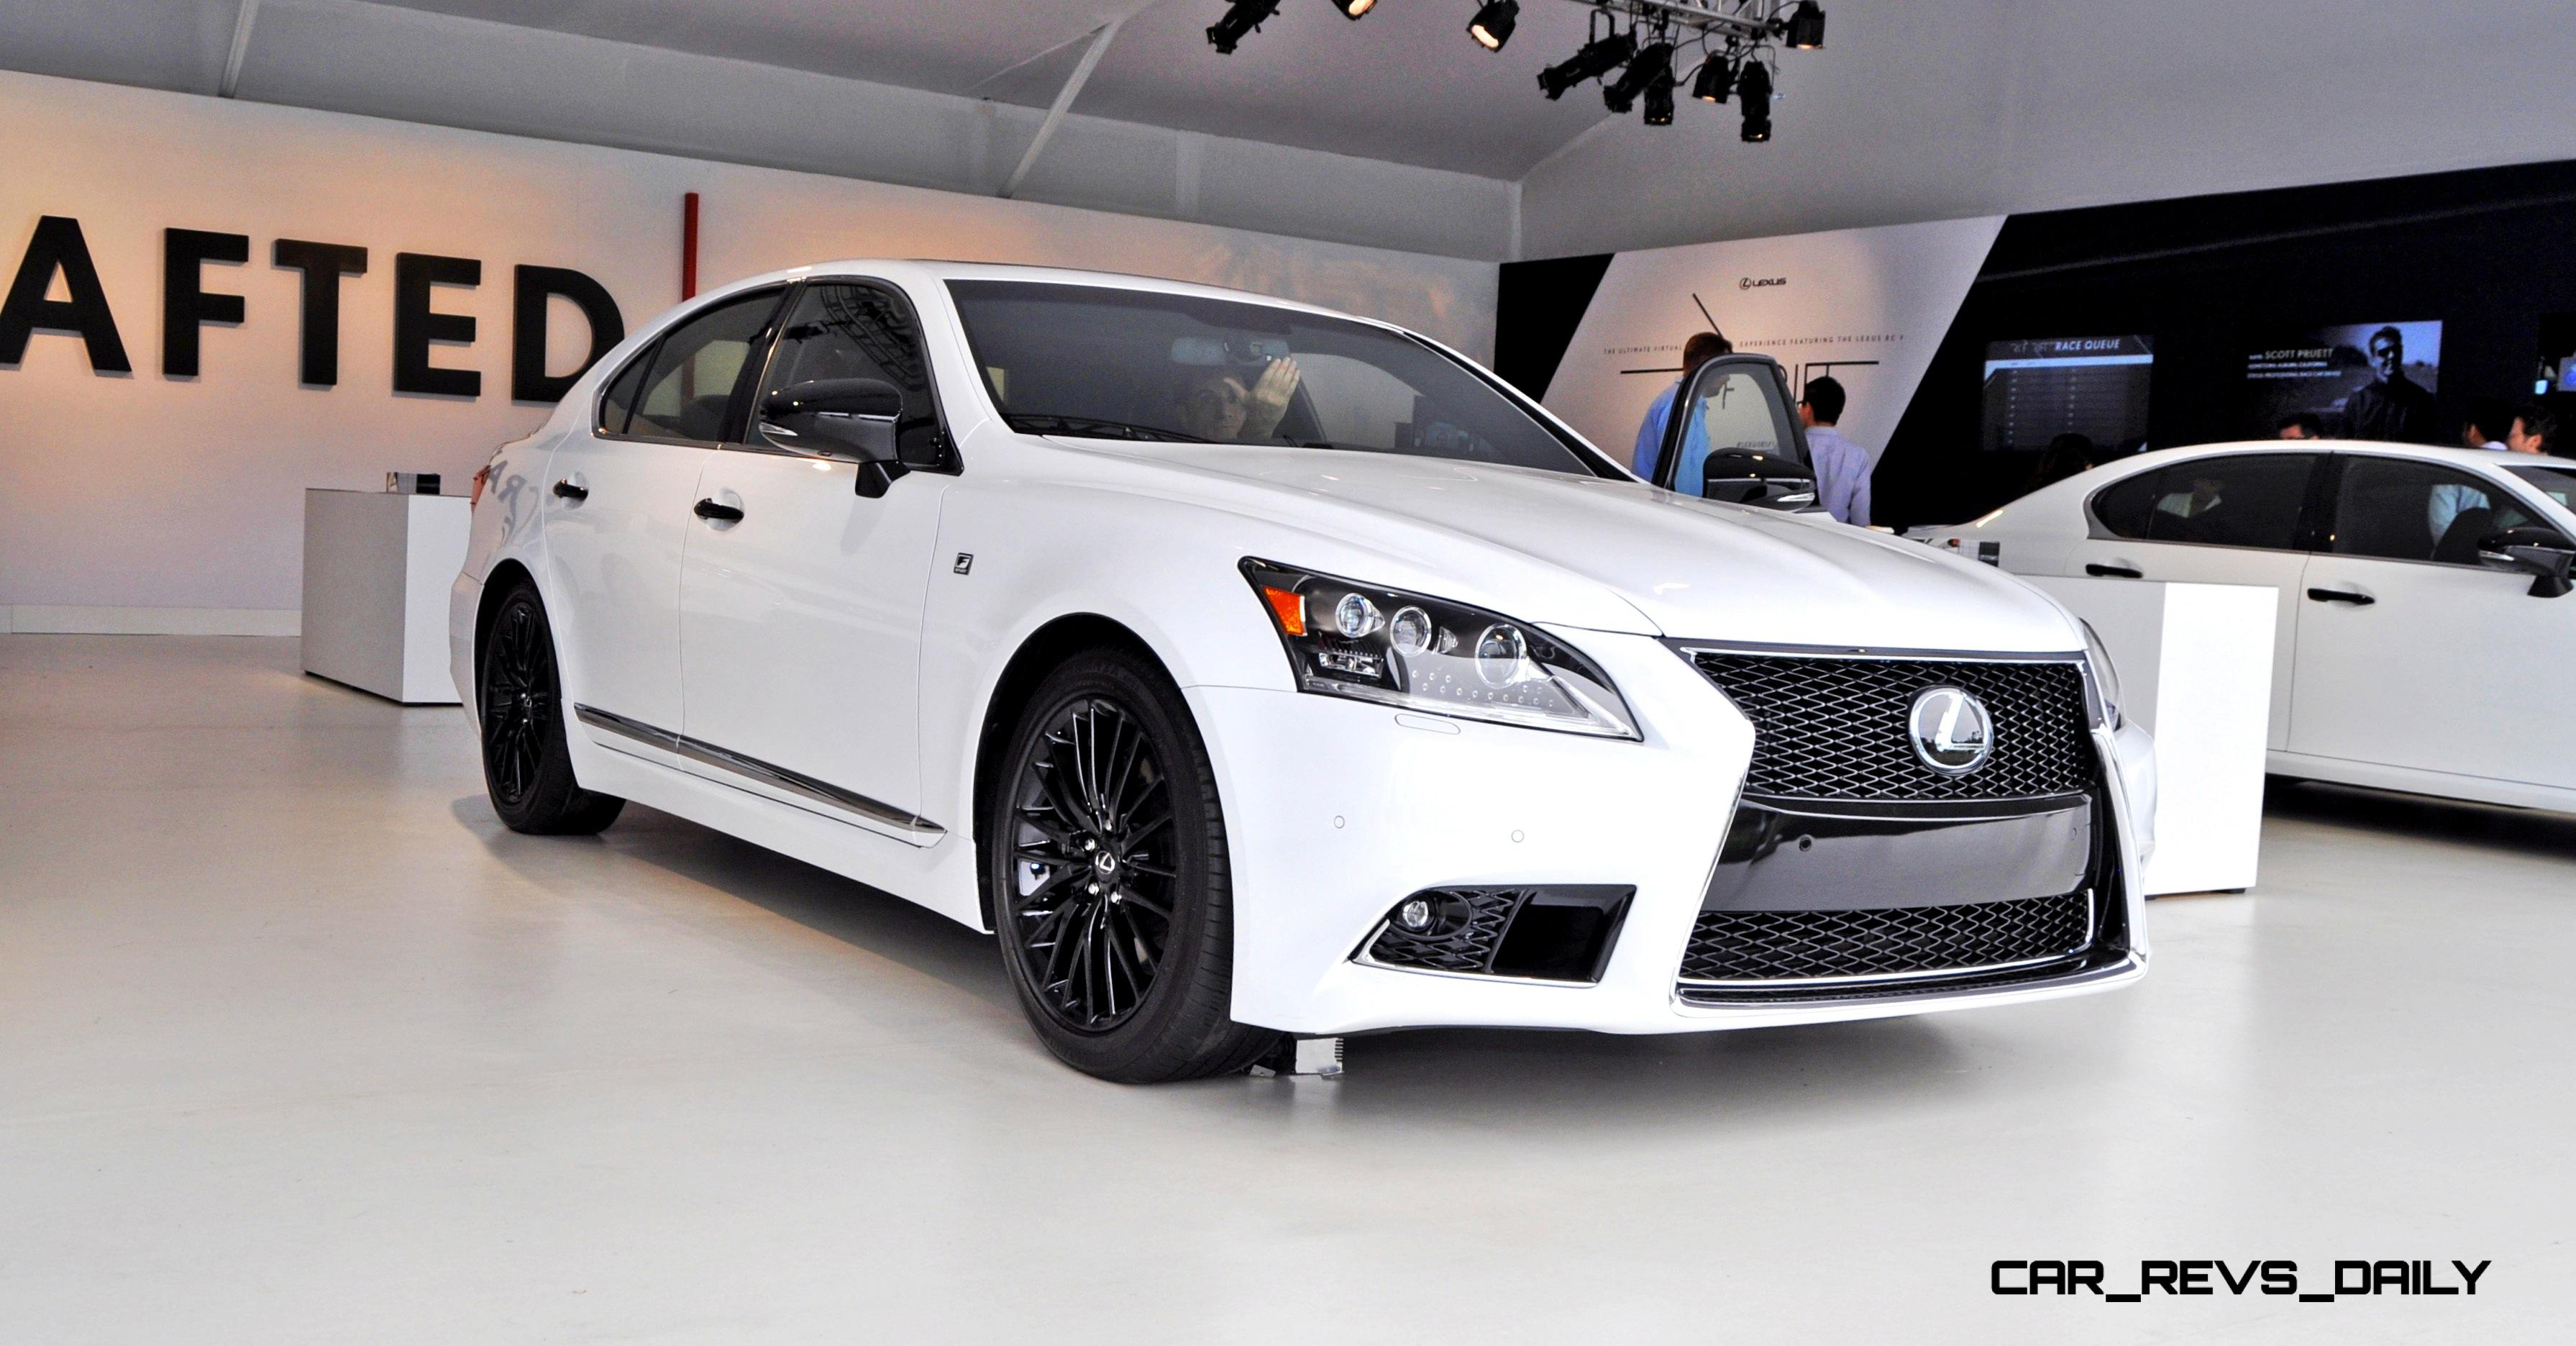 2015 Lexus LS460 F Sport Crafted Line Pebble Beach Debut